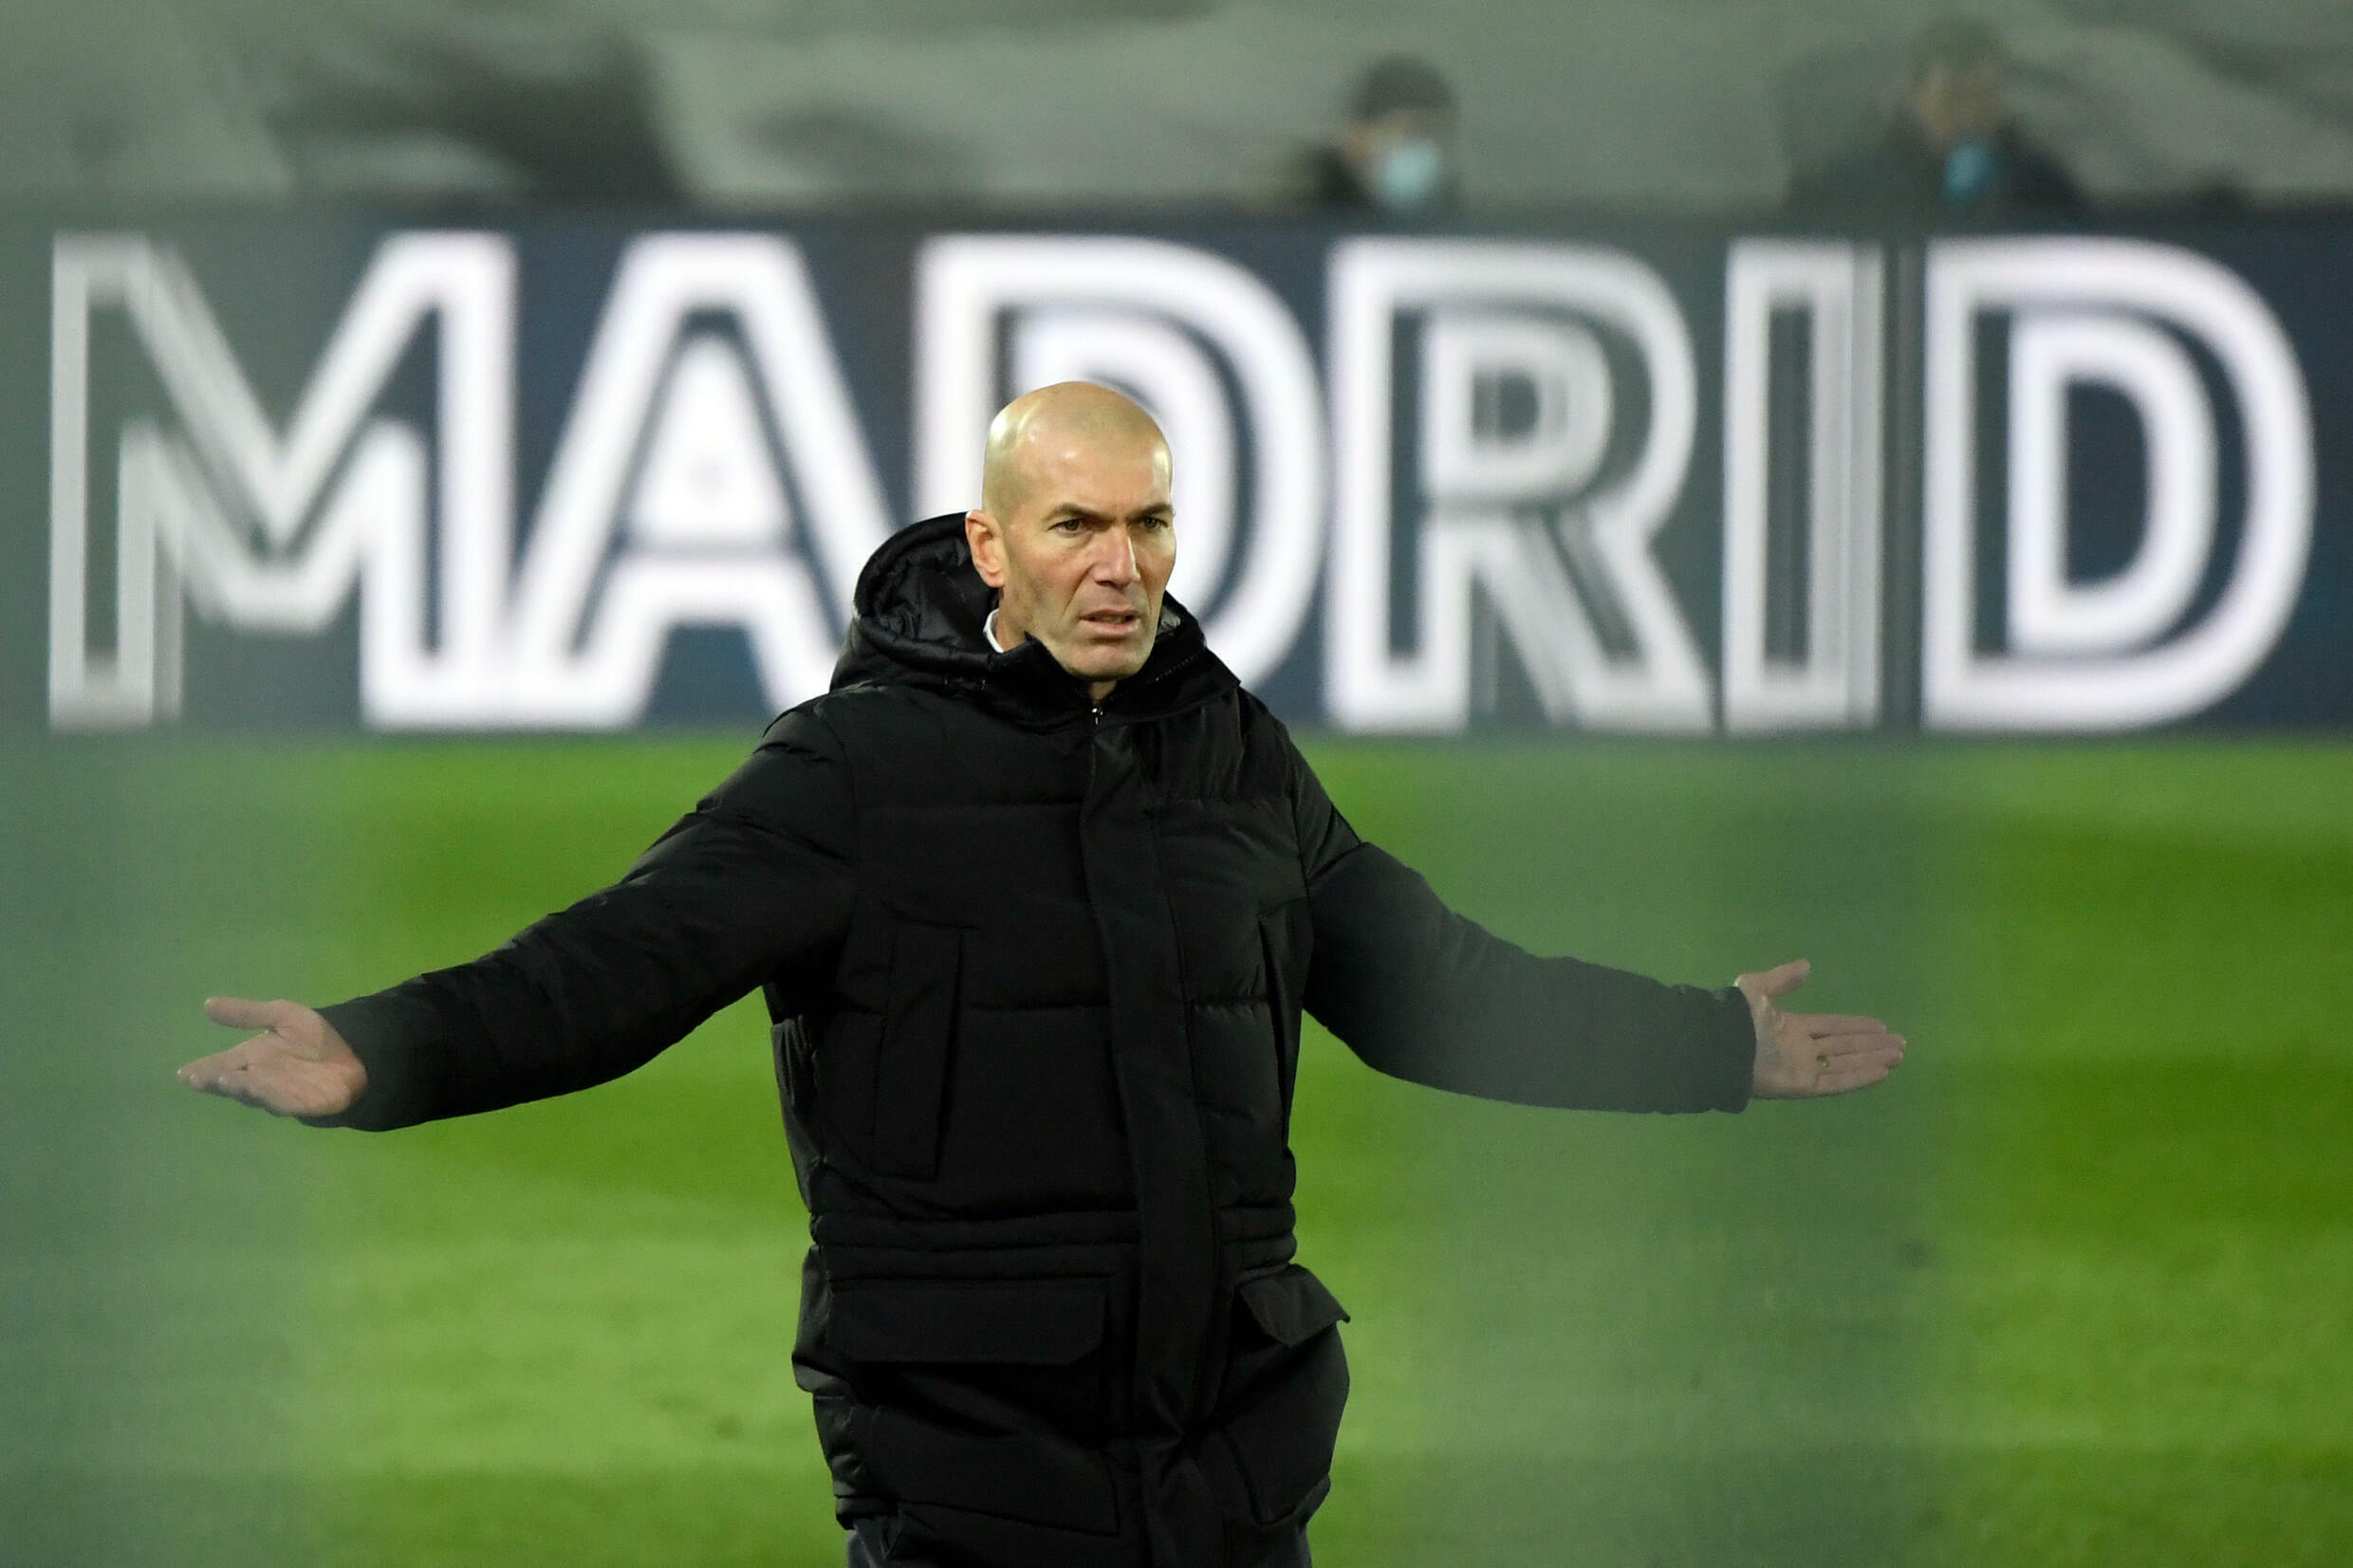 Zidane's positive test comes as Real Madrid are seeking to bounce back from an embarrassing midweek Copa del Rey exit.